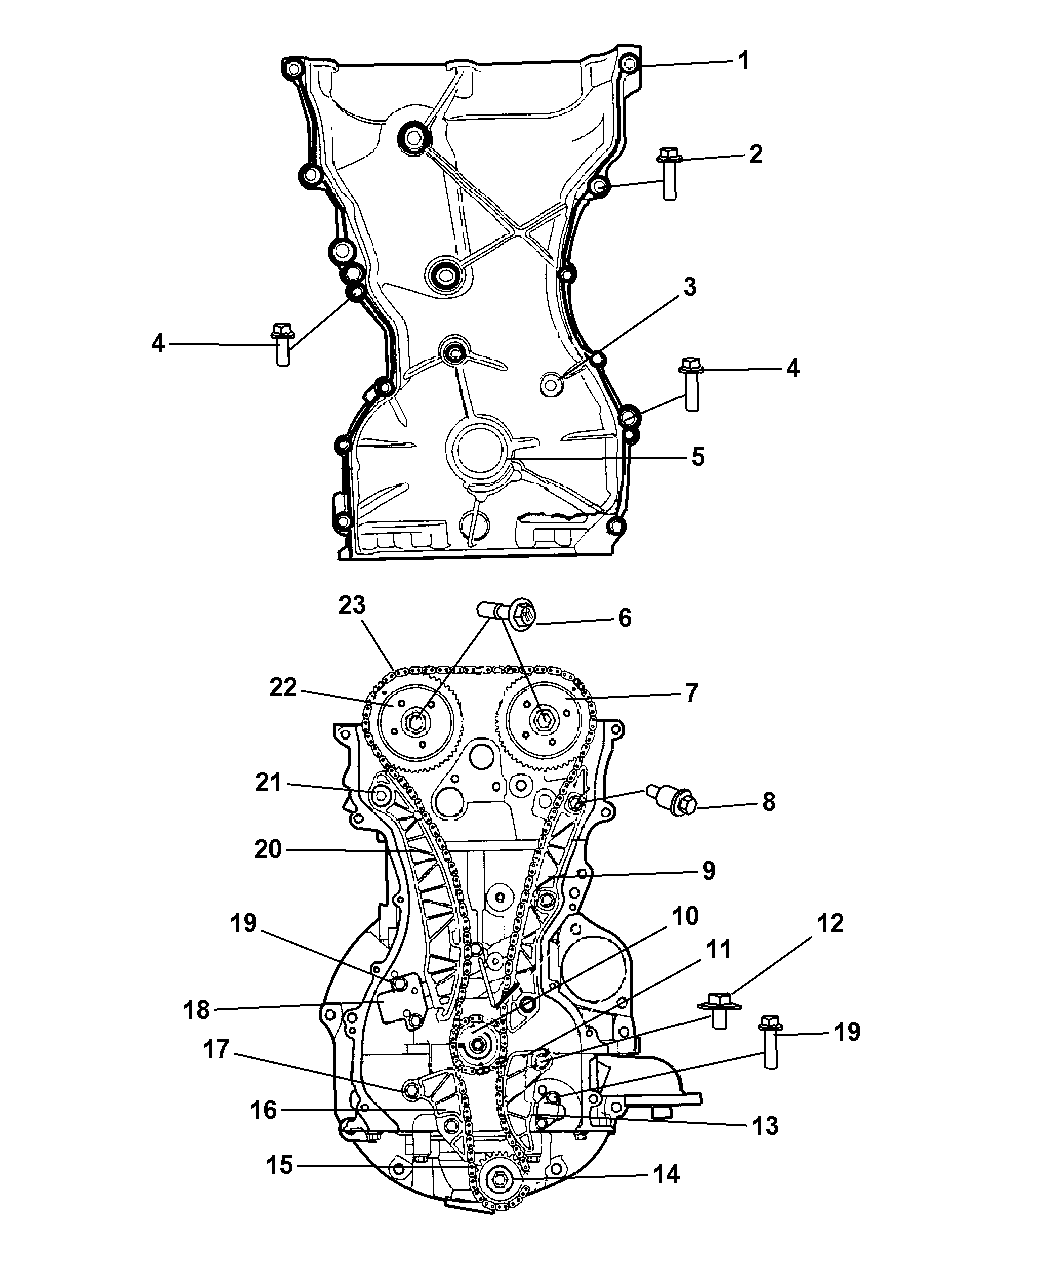 dodge caliber 2 0 engine diagram wiring library 2007 dodge caliber transmission diagram dodge caliber transmission diagram